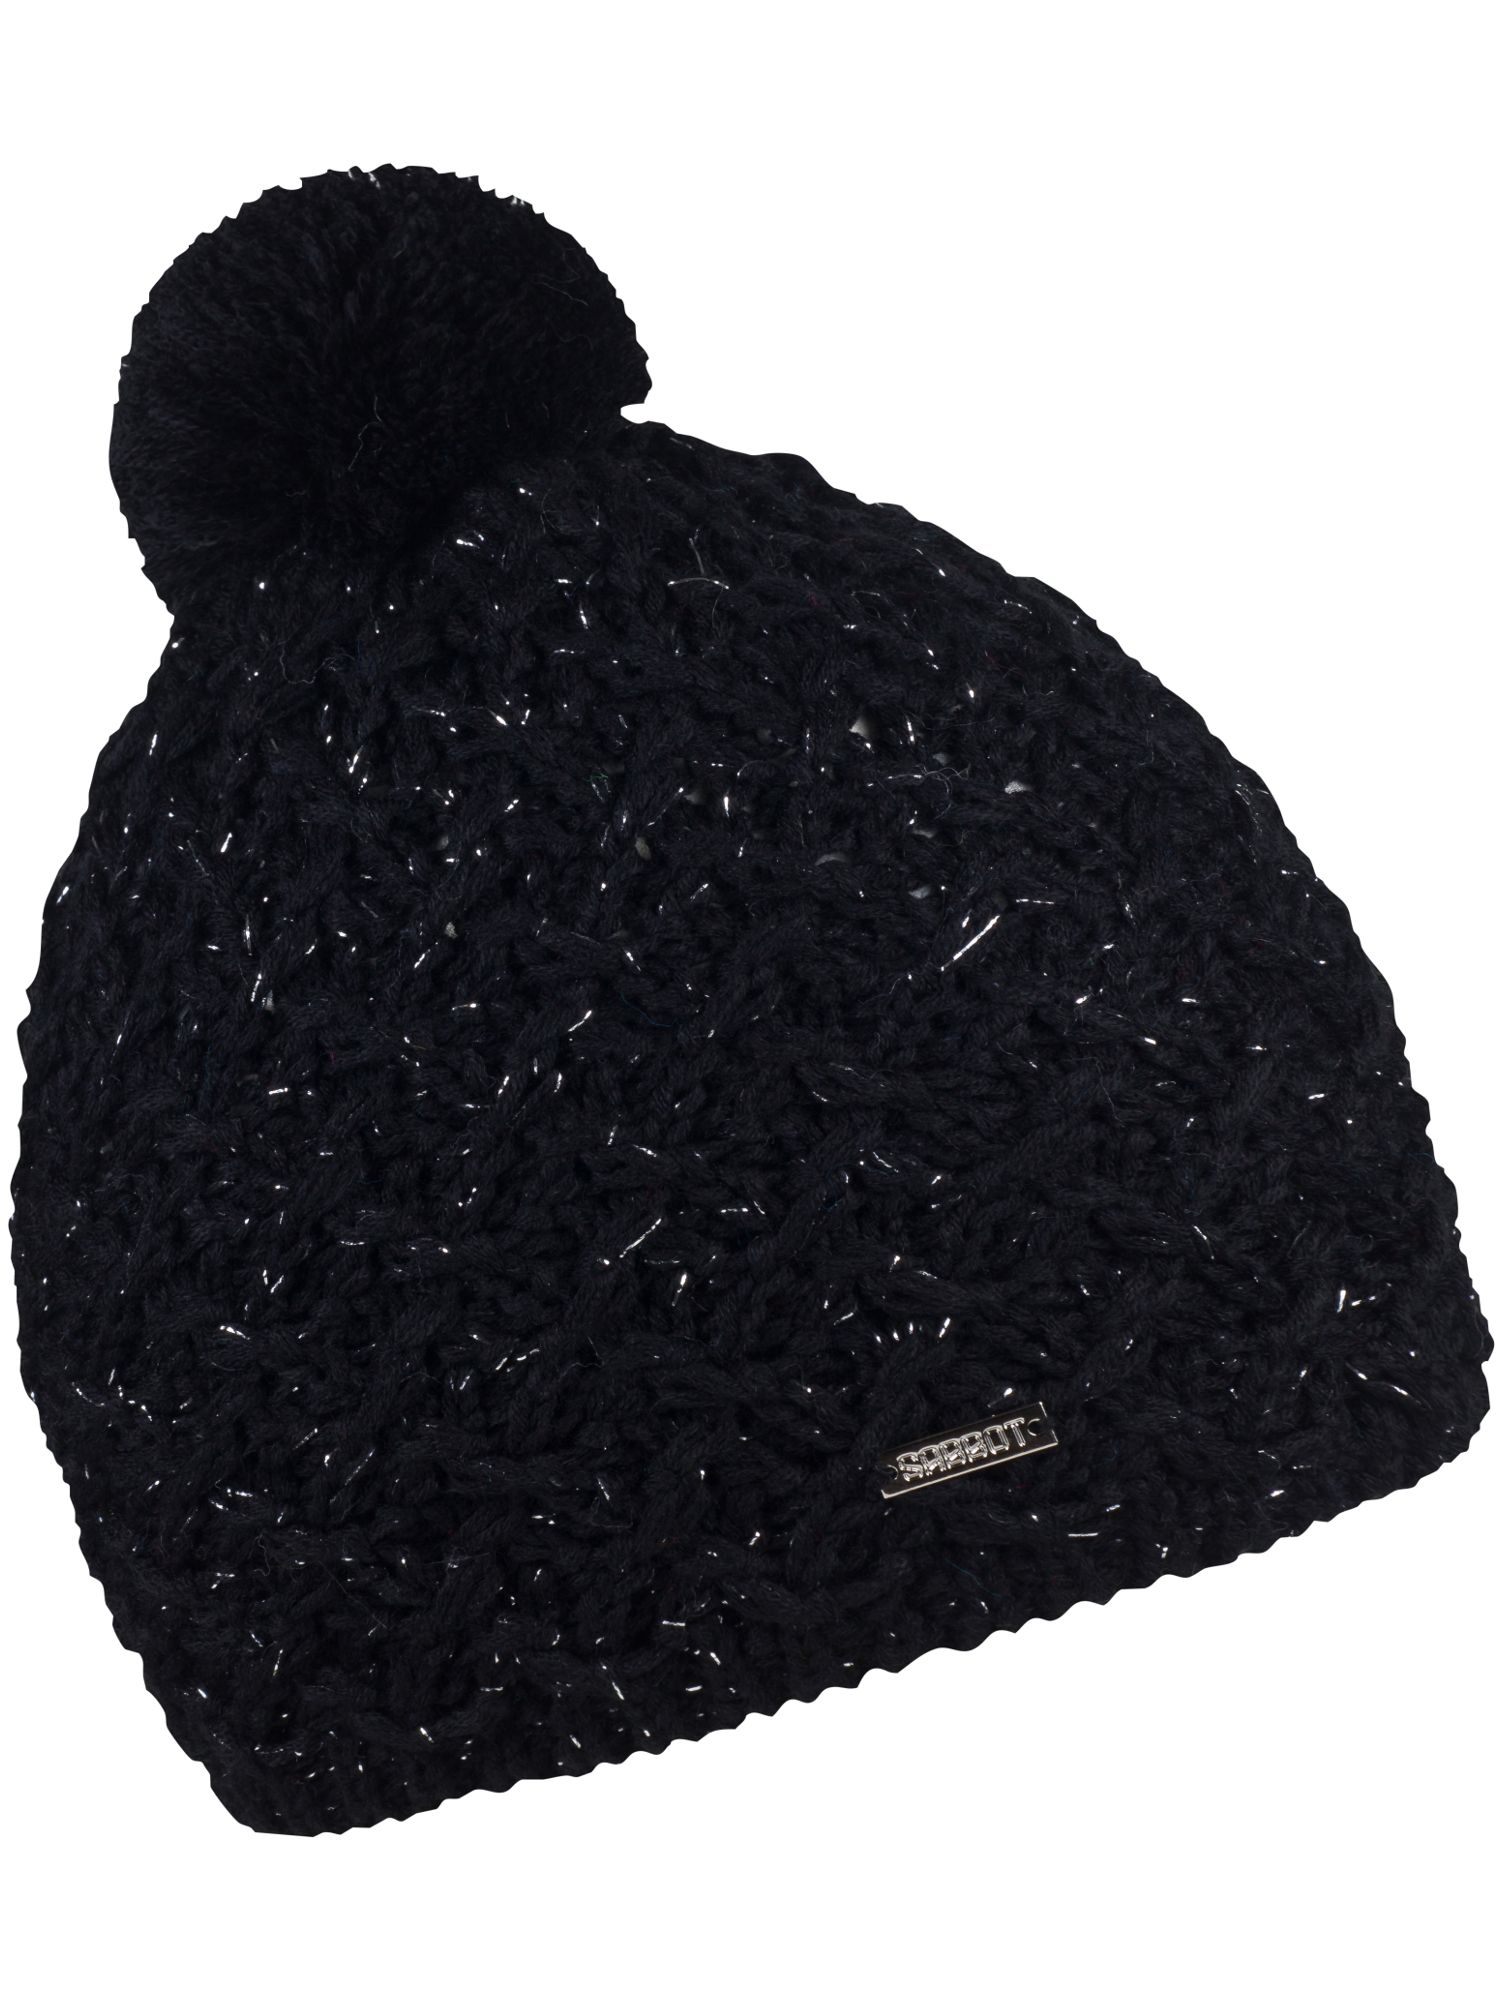 Sabbot Cable Knit Beanie Black